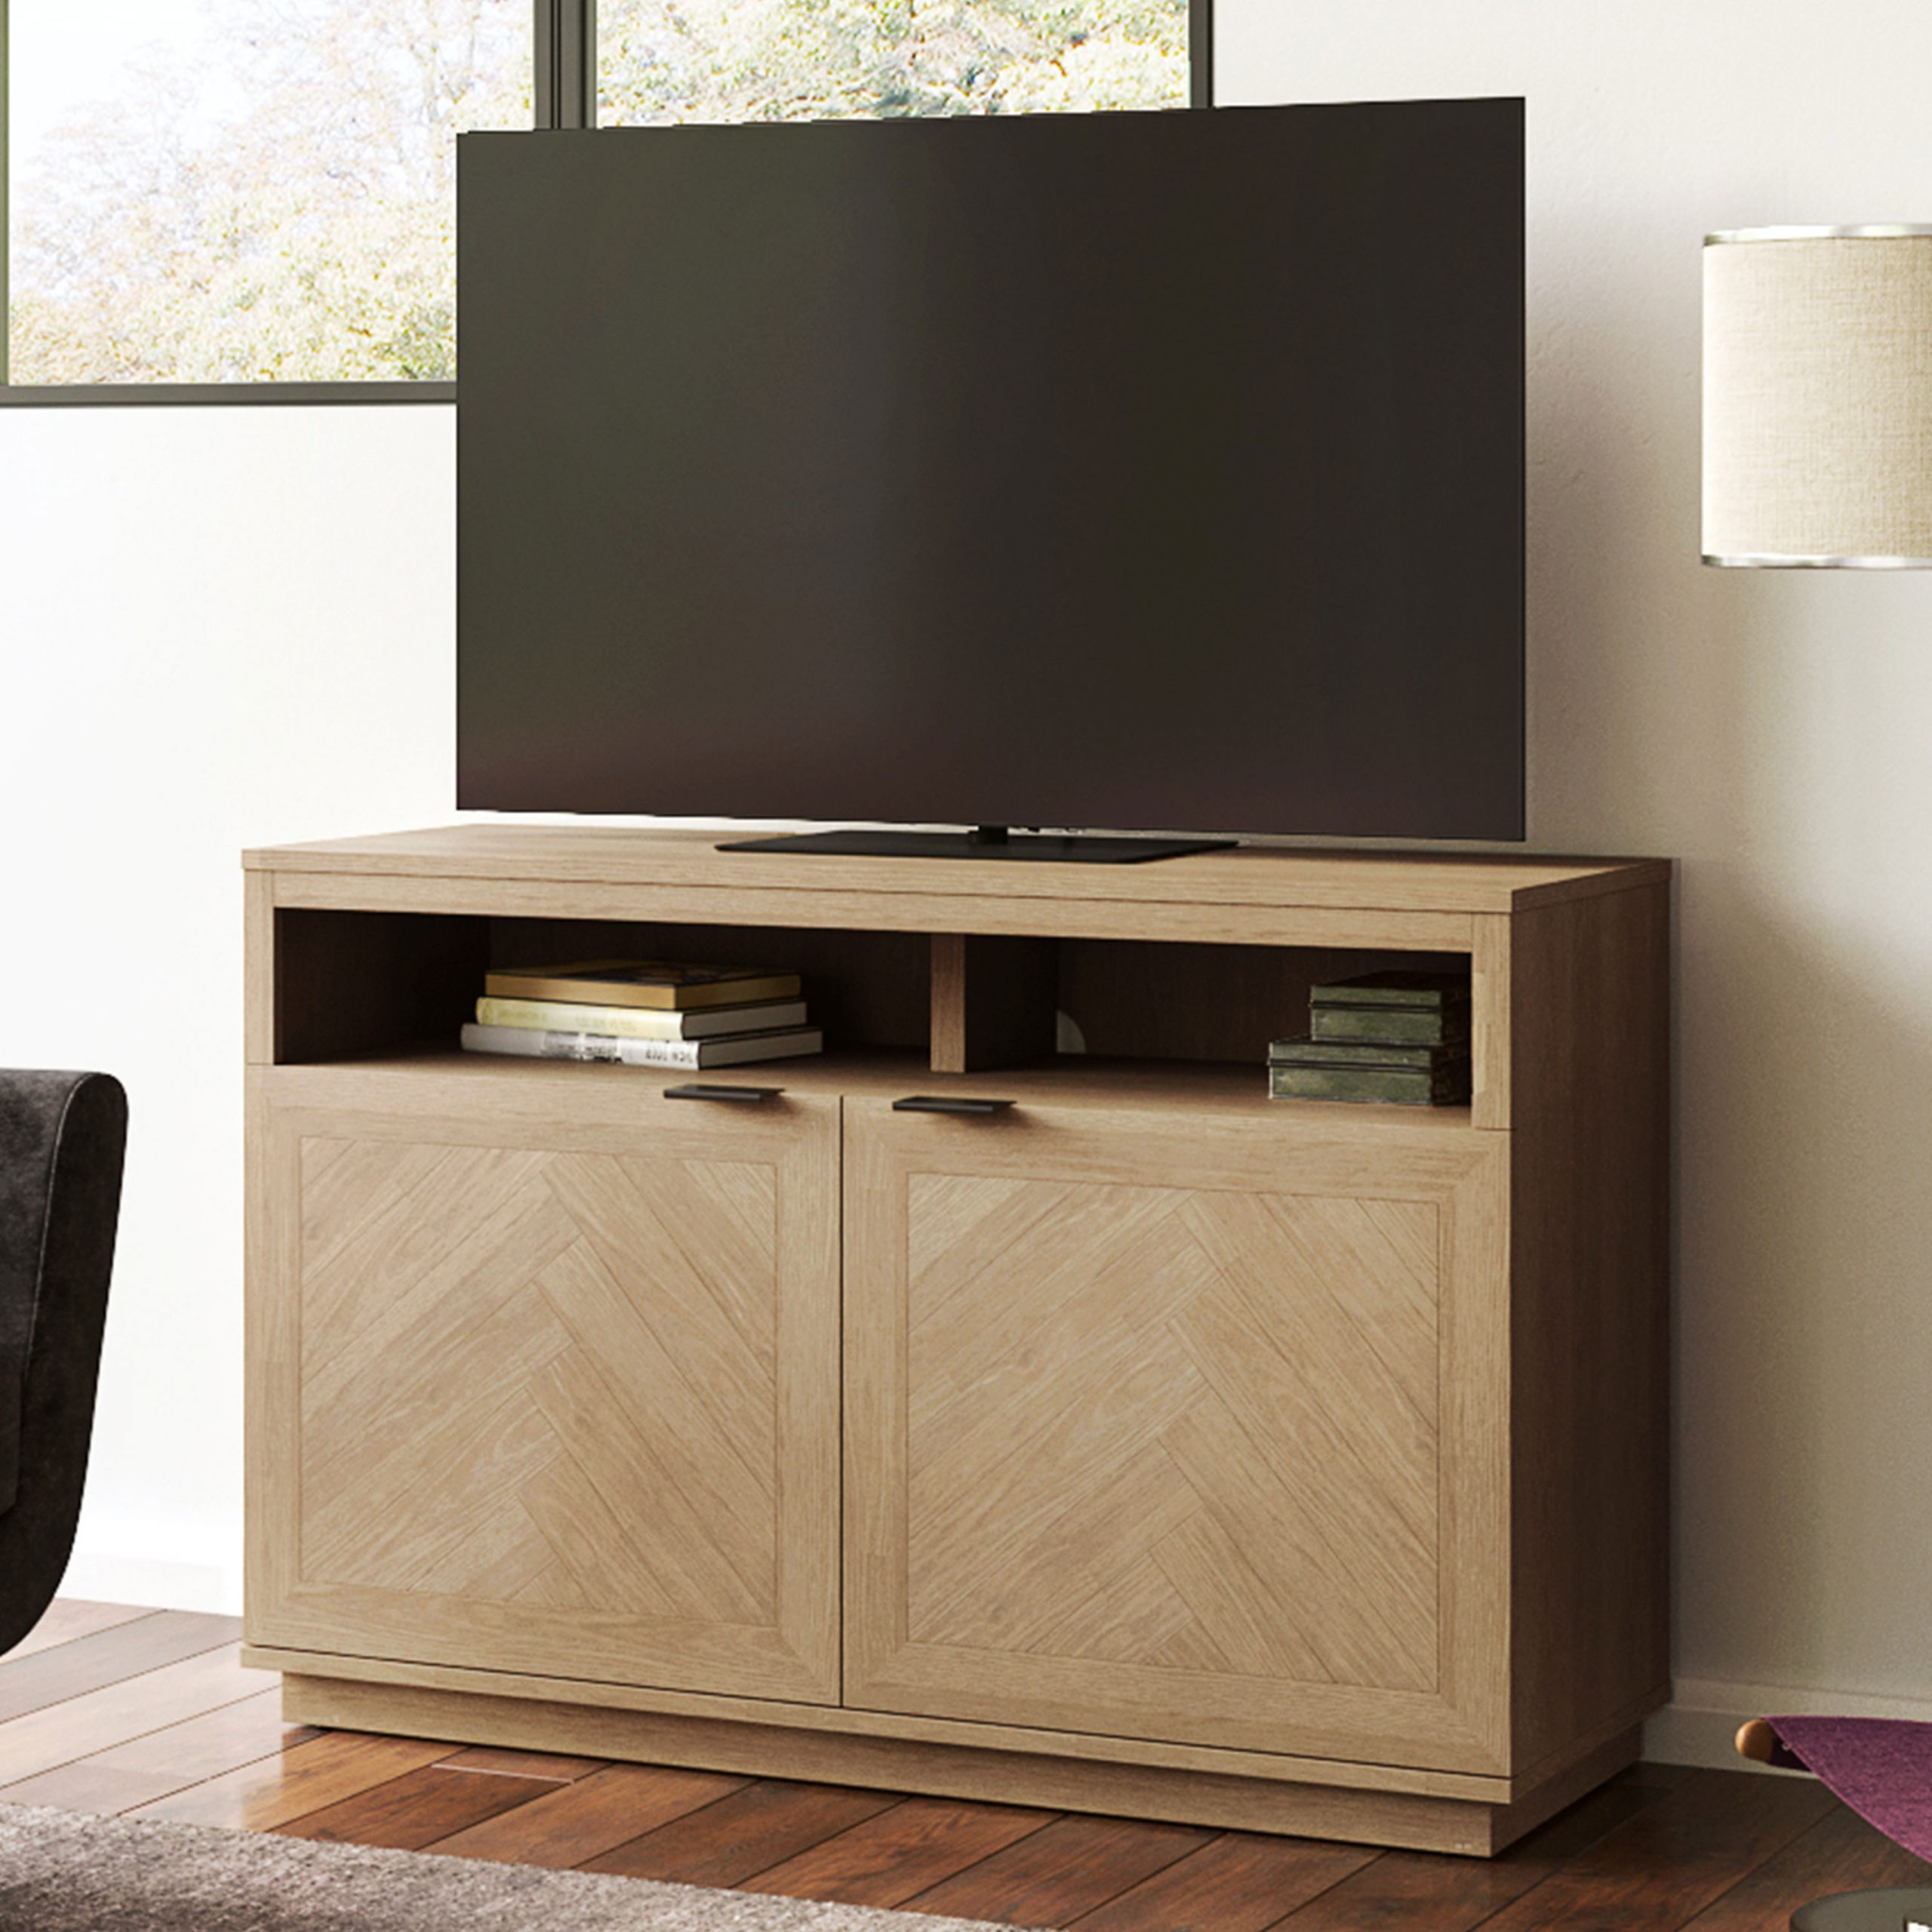 """Better Homes & Gardens Hendrix Herringbone Style Tv Stand Pertaining To 2017 Twila Tv Stands For Tvs Up To 55"""" (View 7 of 25)"""